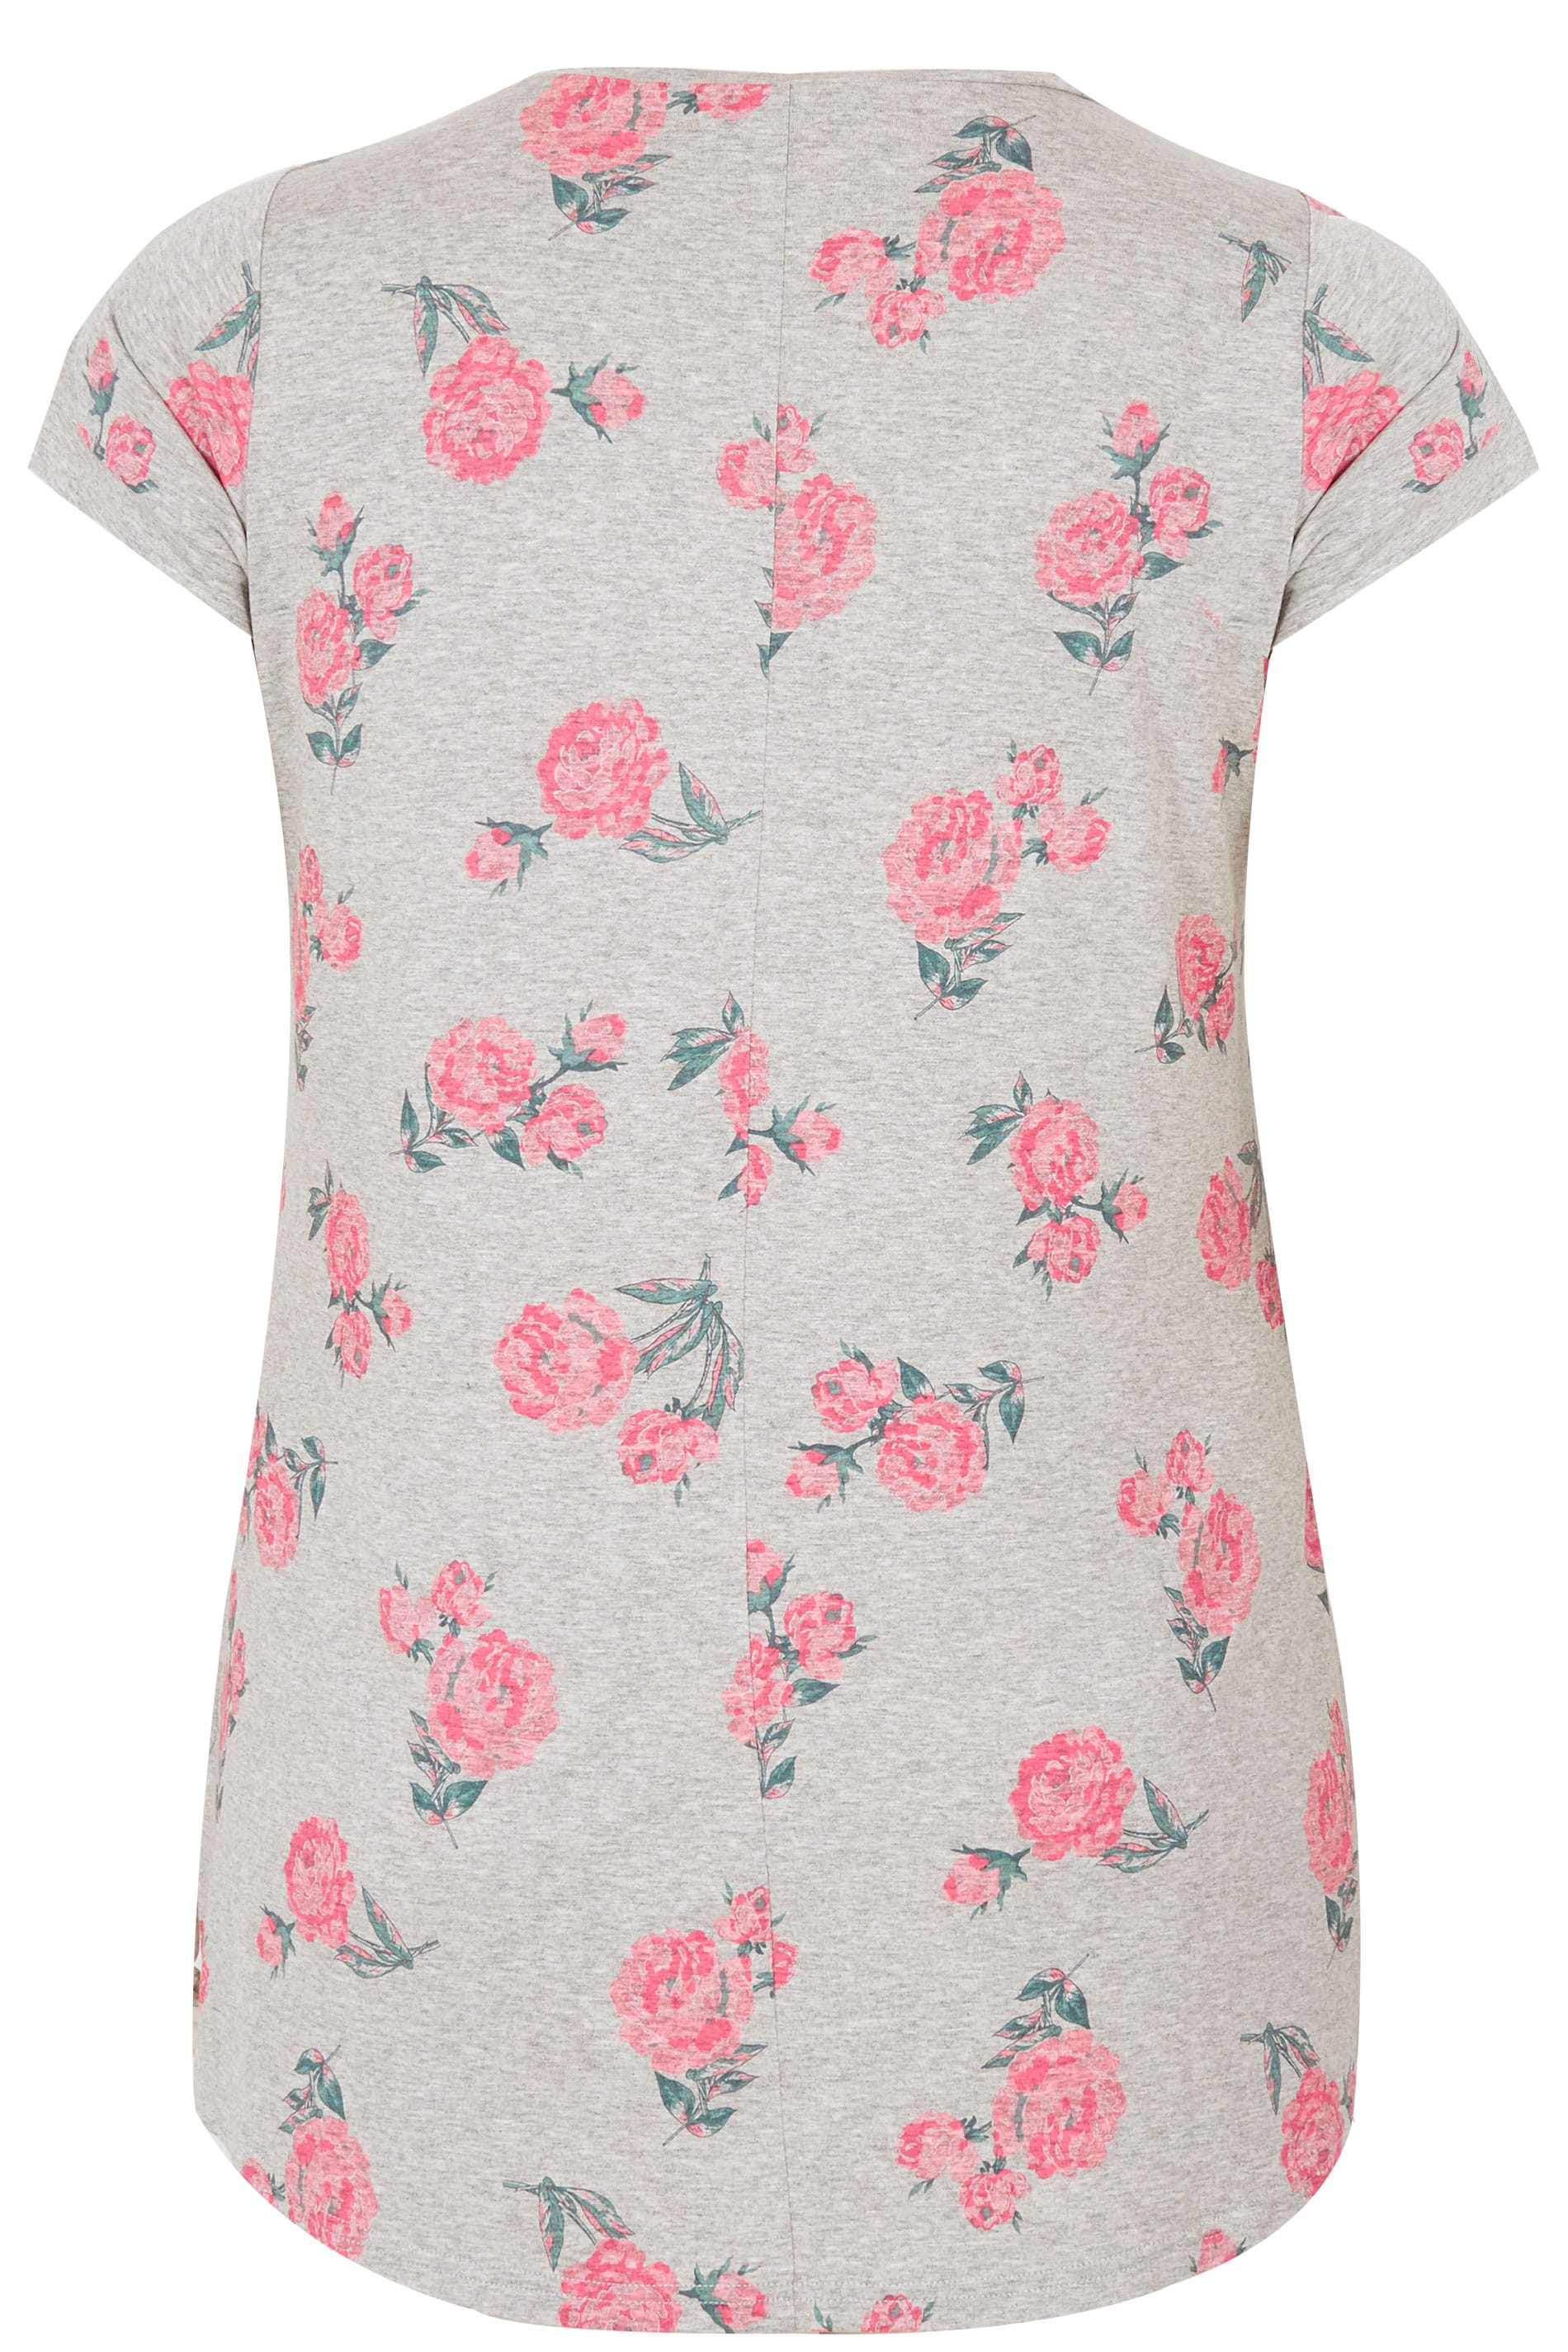 Grey pink foil rose print t shirt plus size 16 to 36 for Quick print t shirts